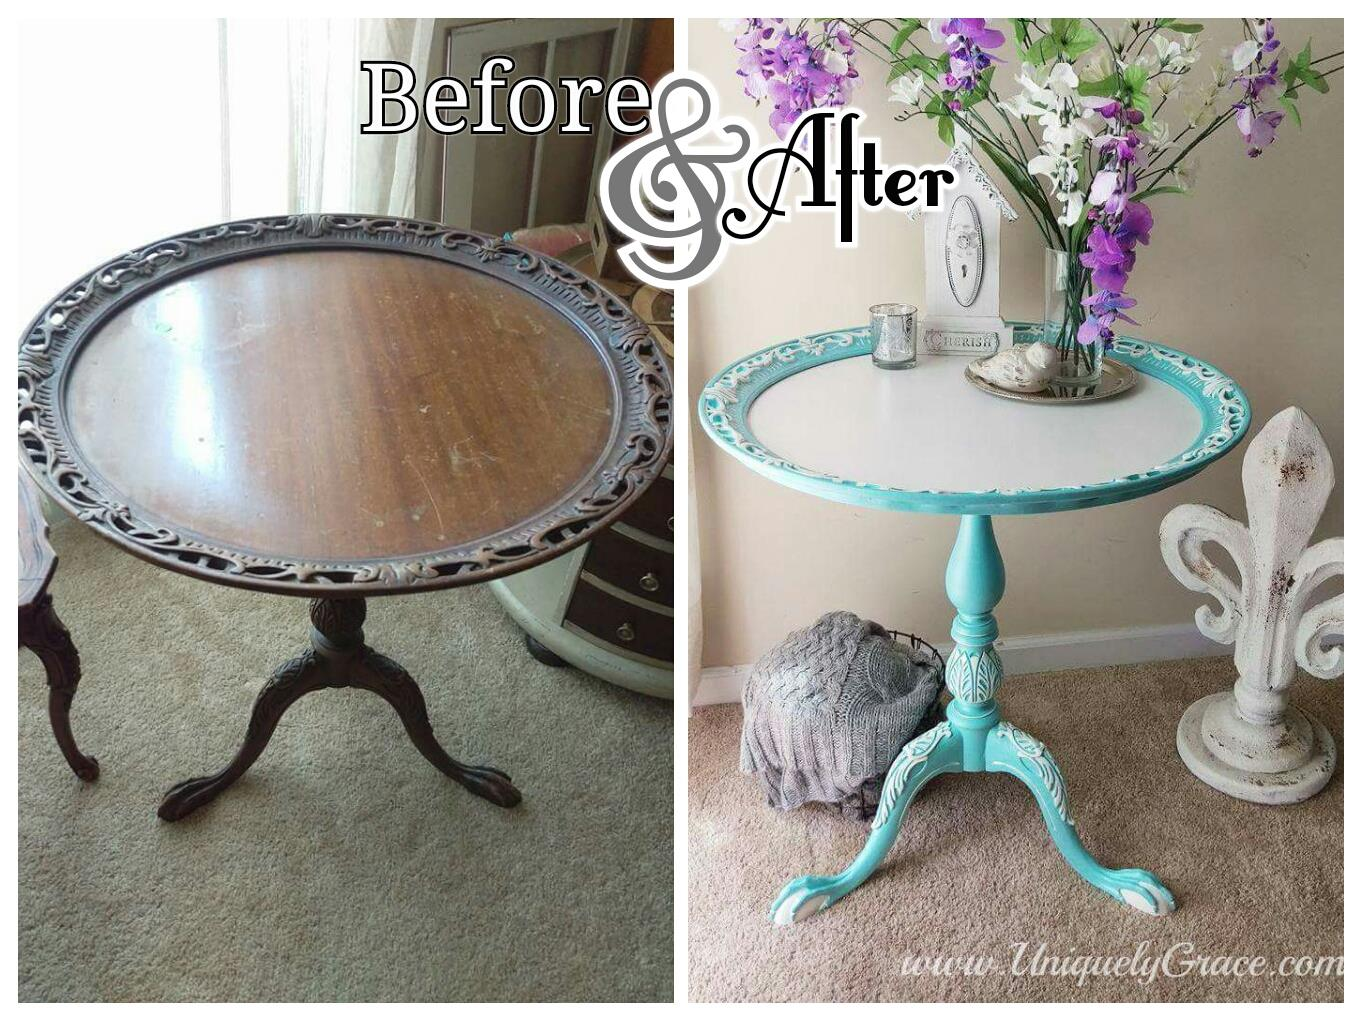 Before And After Of Tiffany Tea Table Pie Crust Edge With Tri Leg Pedastal Ball